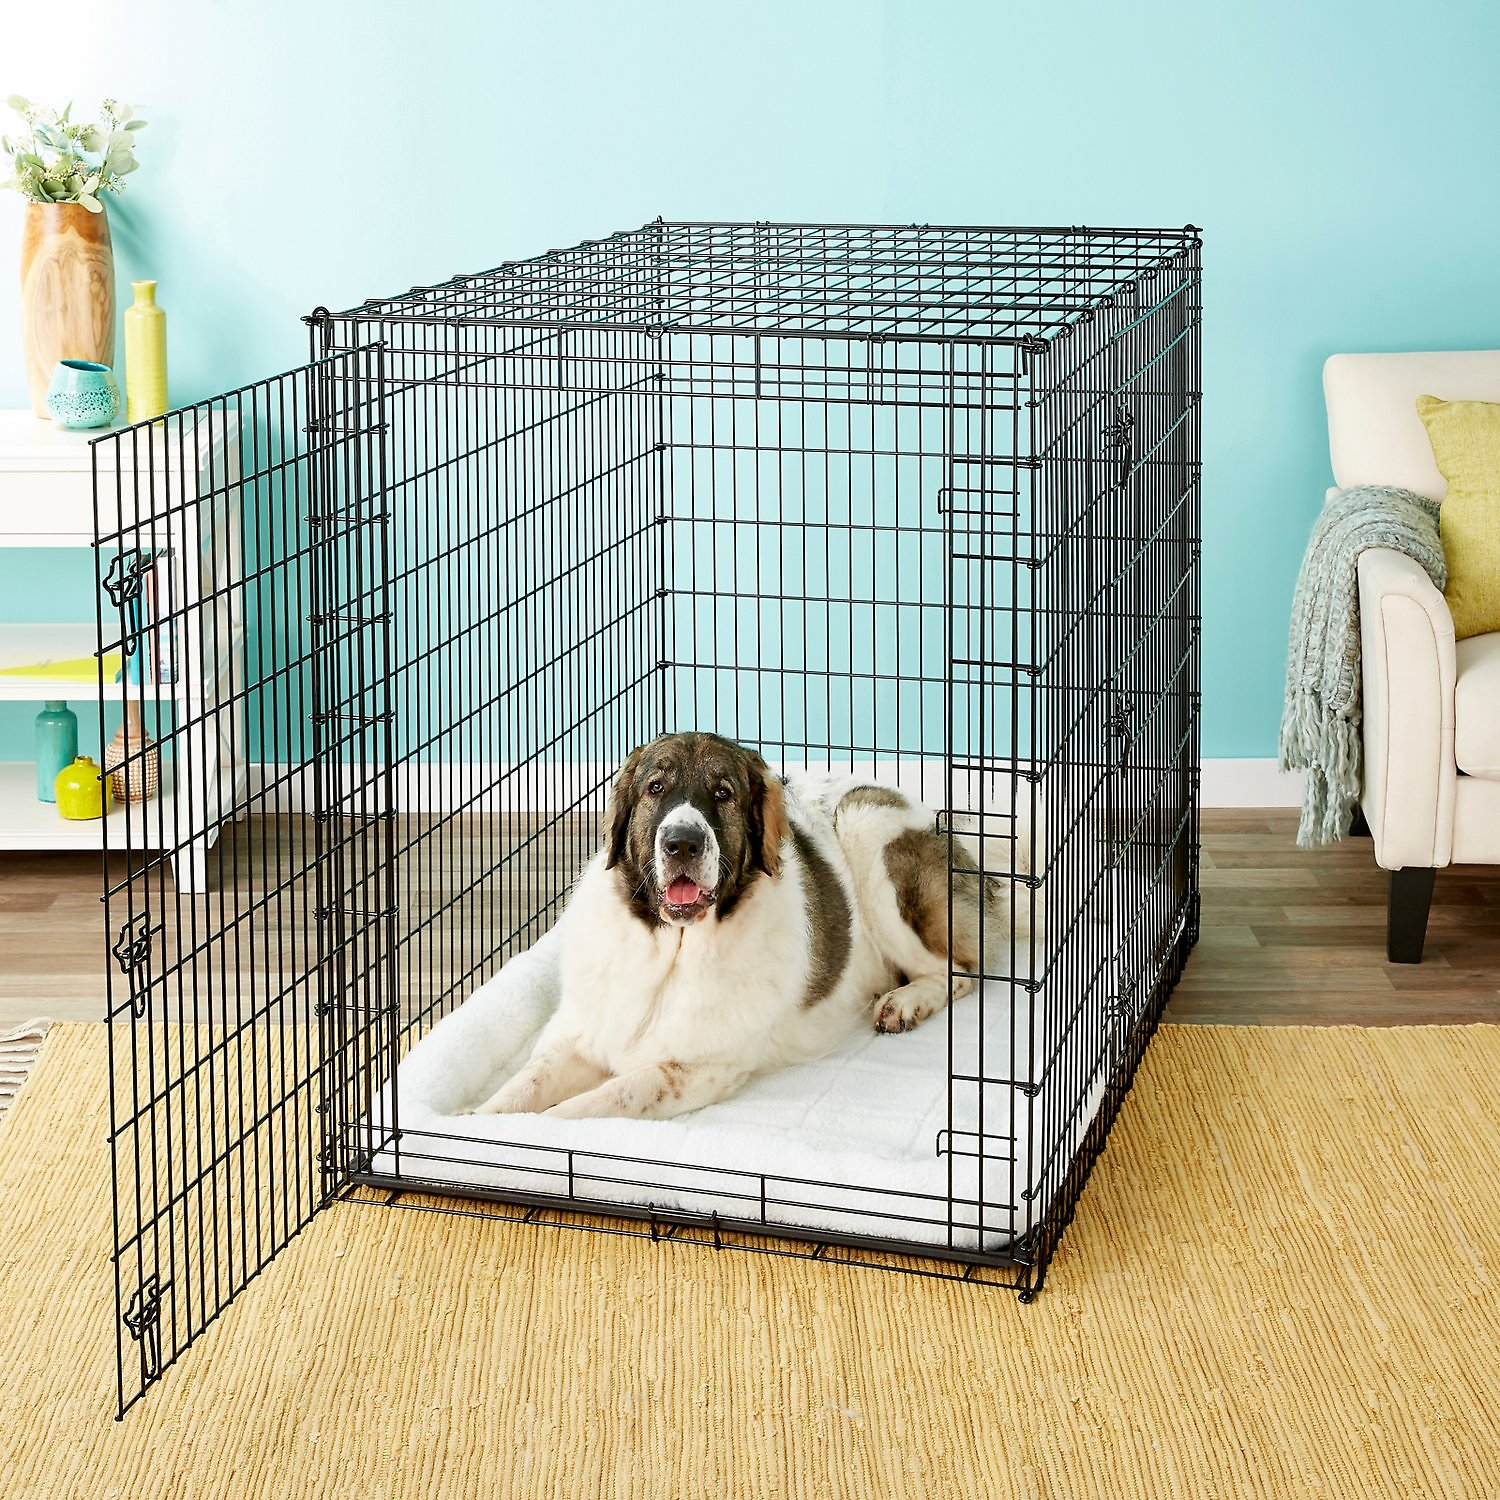 Frisco Xx Large Heavy Duty Double Door Dog Crate At Low Prices Free Shipping At Chewy Com